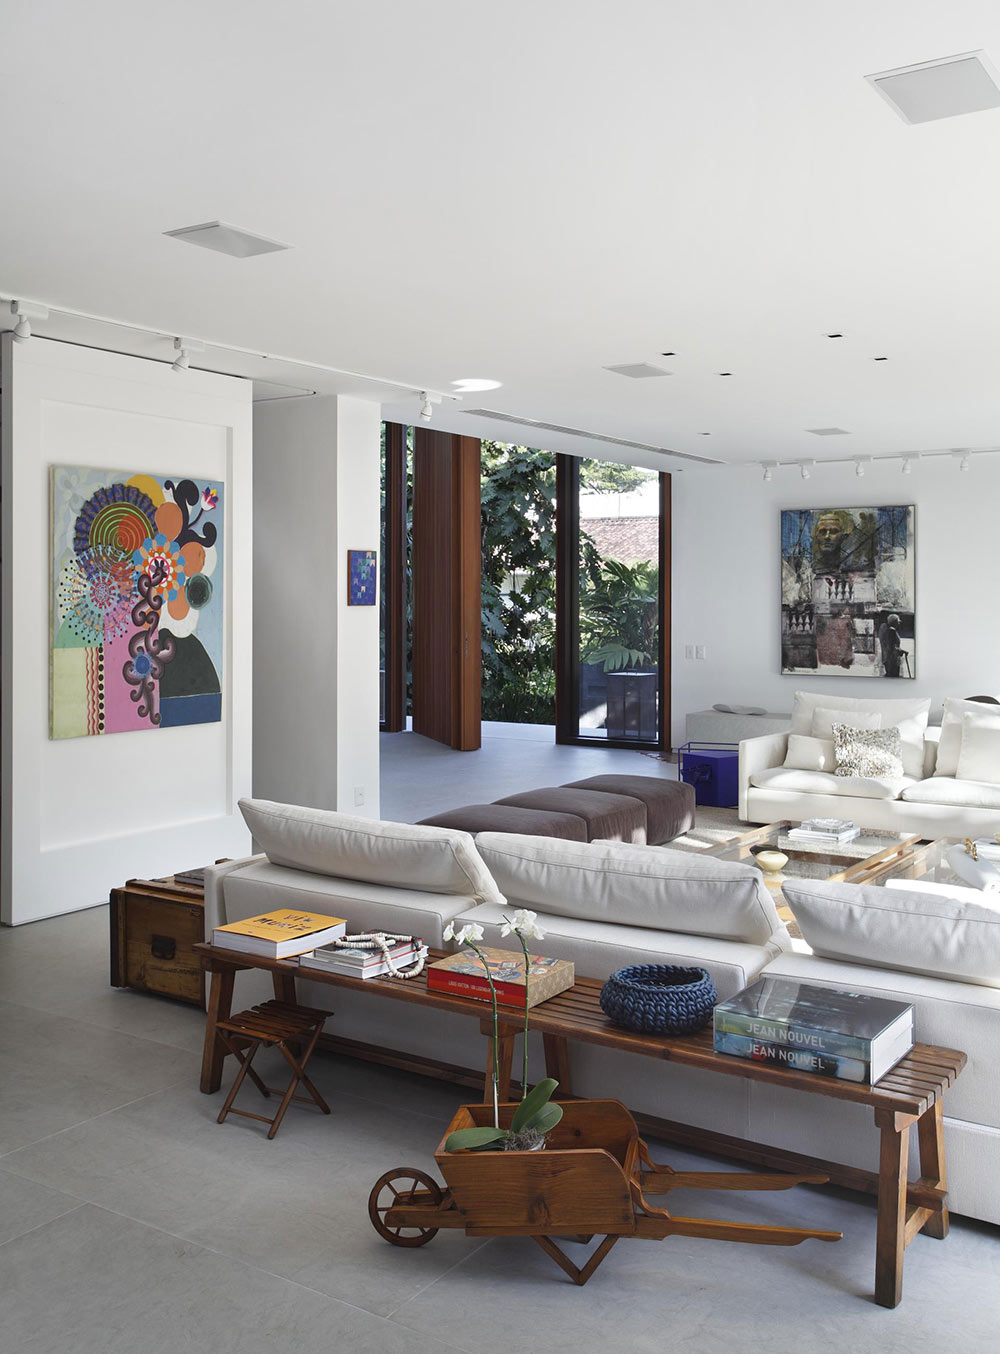 Living Room, Colonial Style House Renovation in Rio de Janeiro